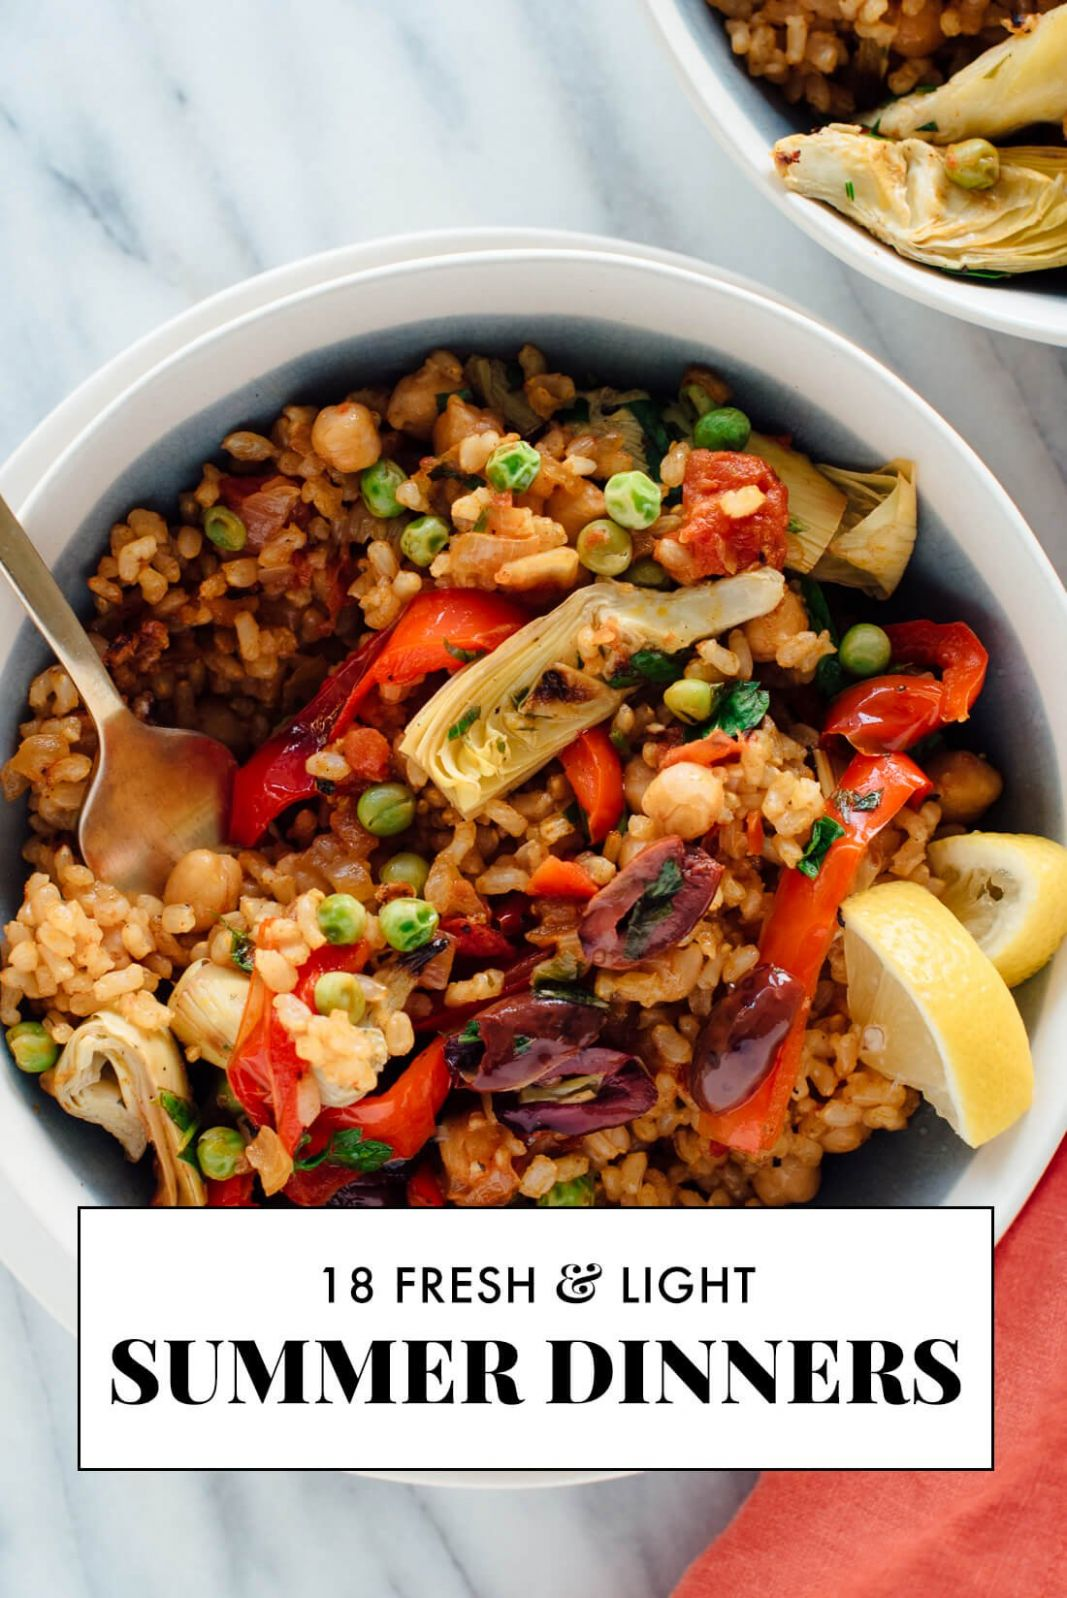 12 Light Summer Dinner Recipes - Cookie and Kate - Food Recipes Summer